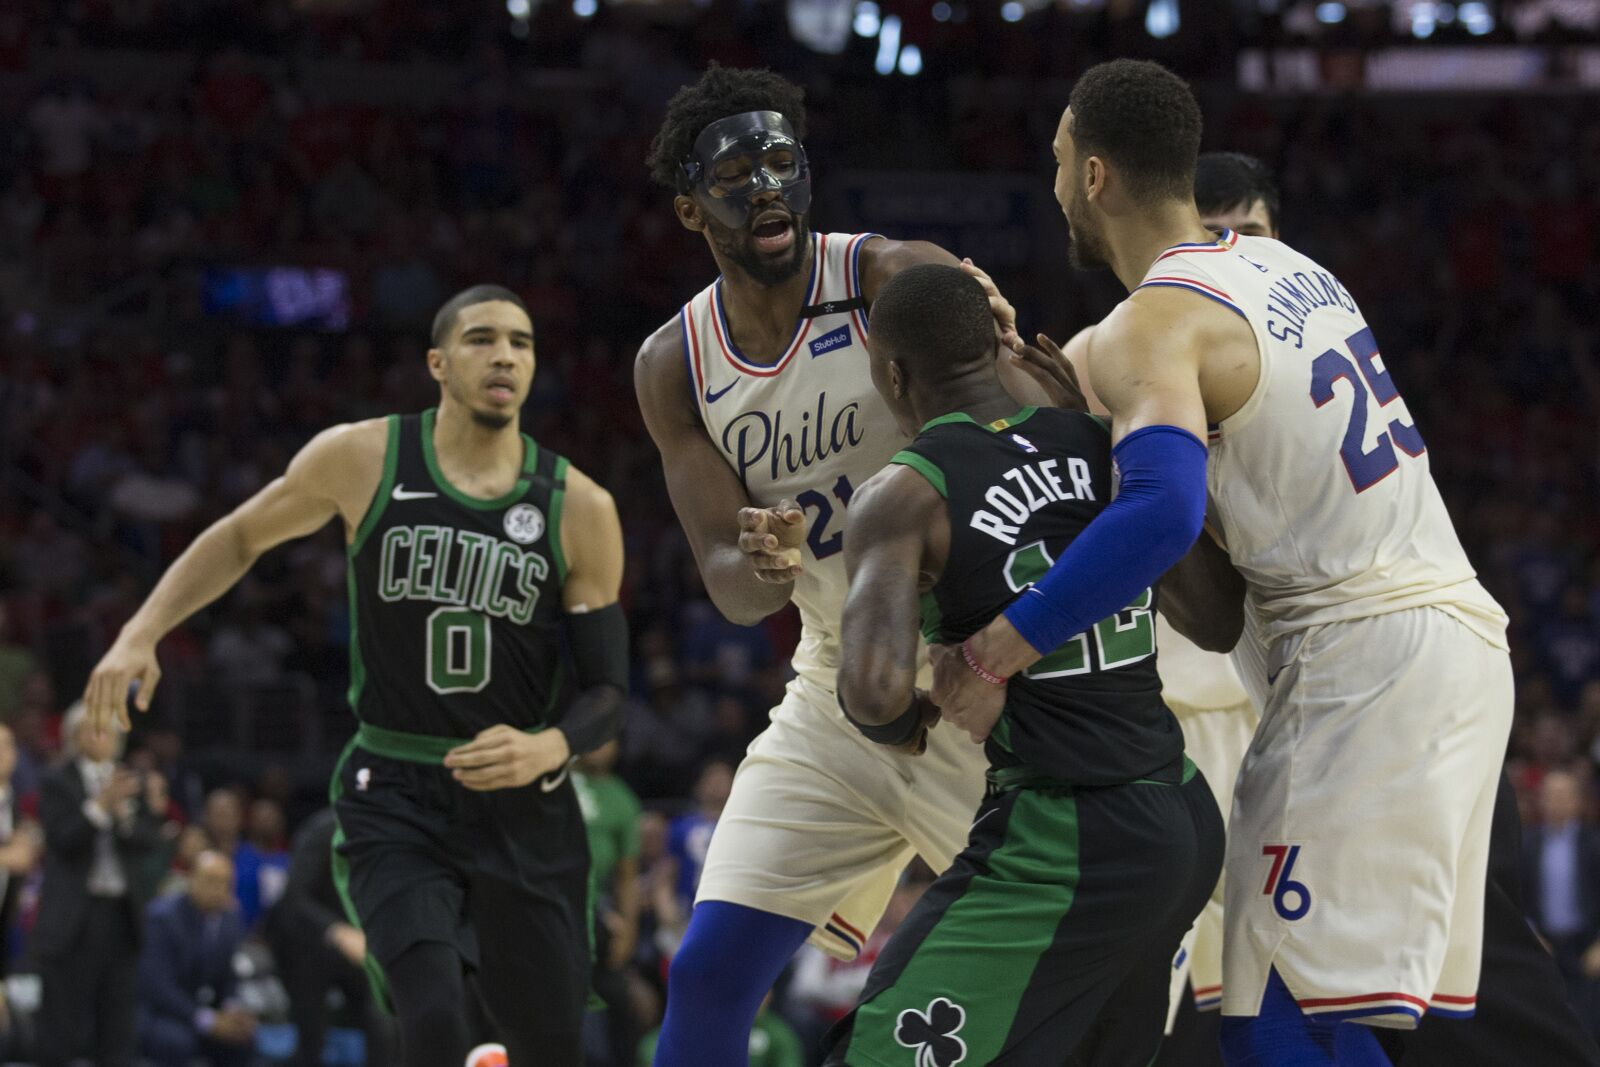 Philadelphia 76ers at the forefront of early 2018-19 NBA ...